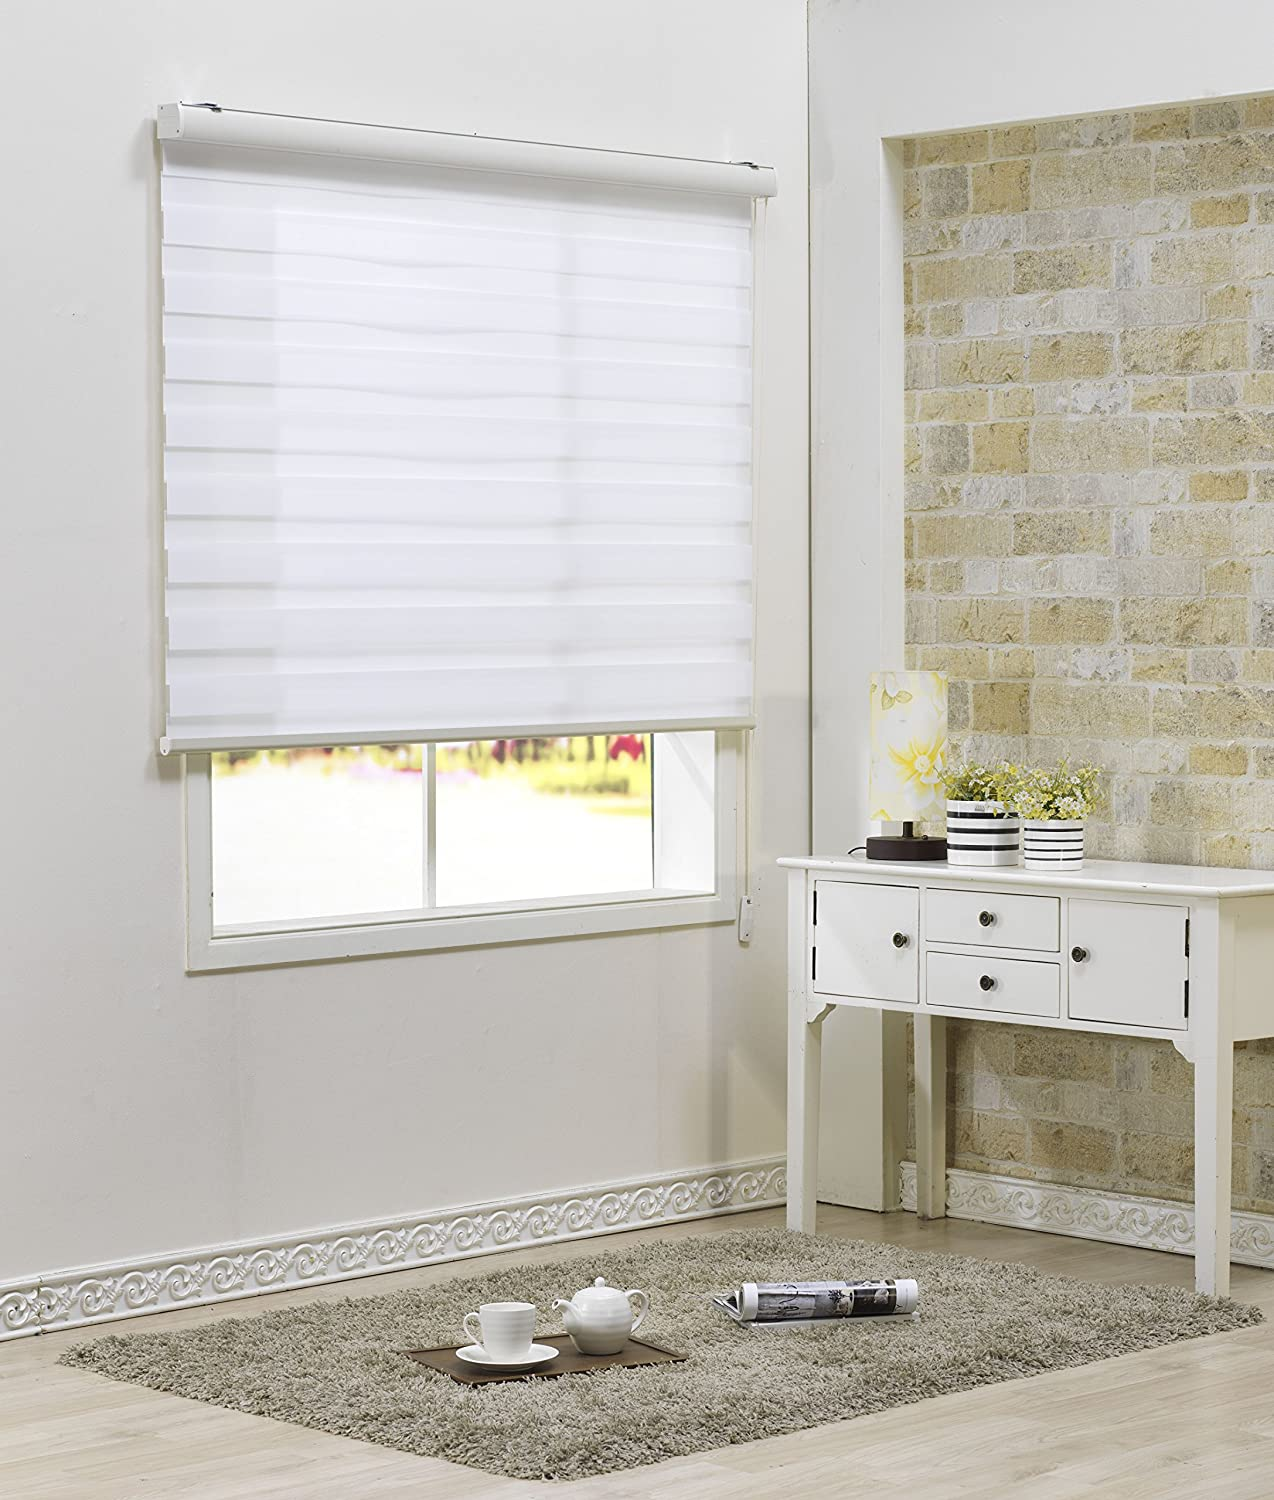 Winsharp Blackout Jasmine , White , W 23 x H 64 Inch Custom Cut to Size Maximum 91 Inch Wide by 103 Inch Long Roller Blackout Fabric Shade Horizontal Window Blinds /& Treatments